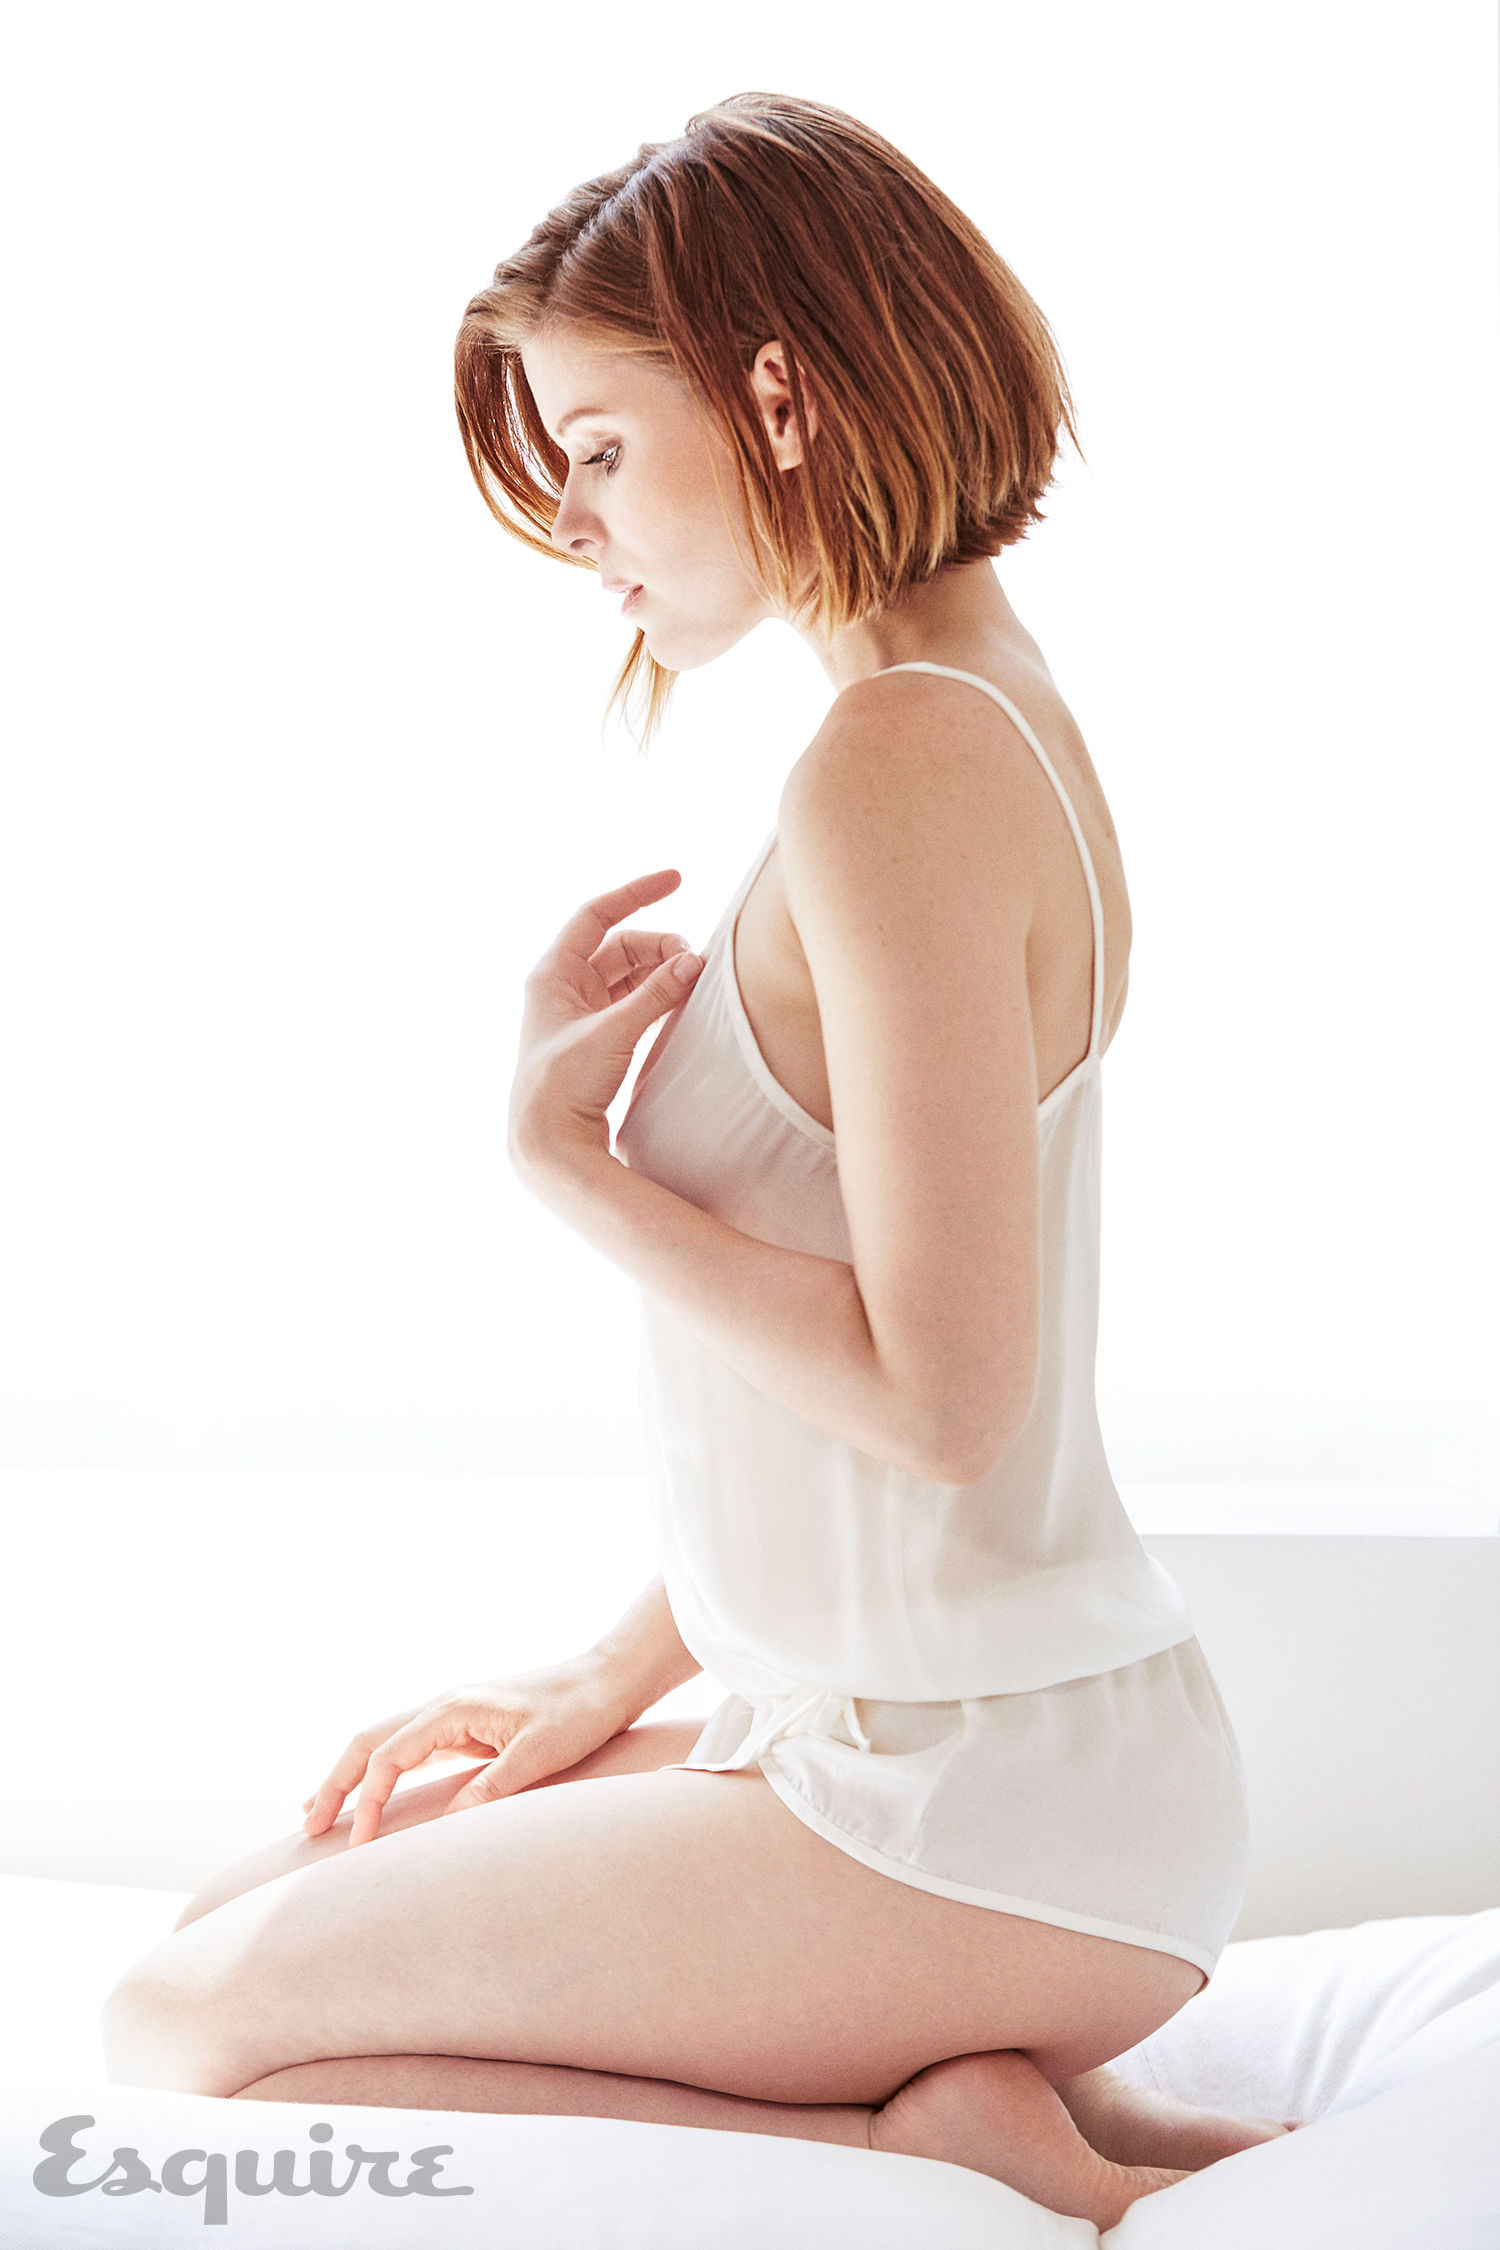 Topless Pics Of Kate Mara